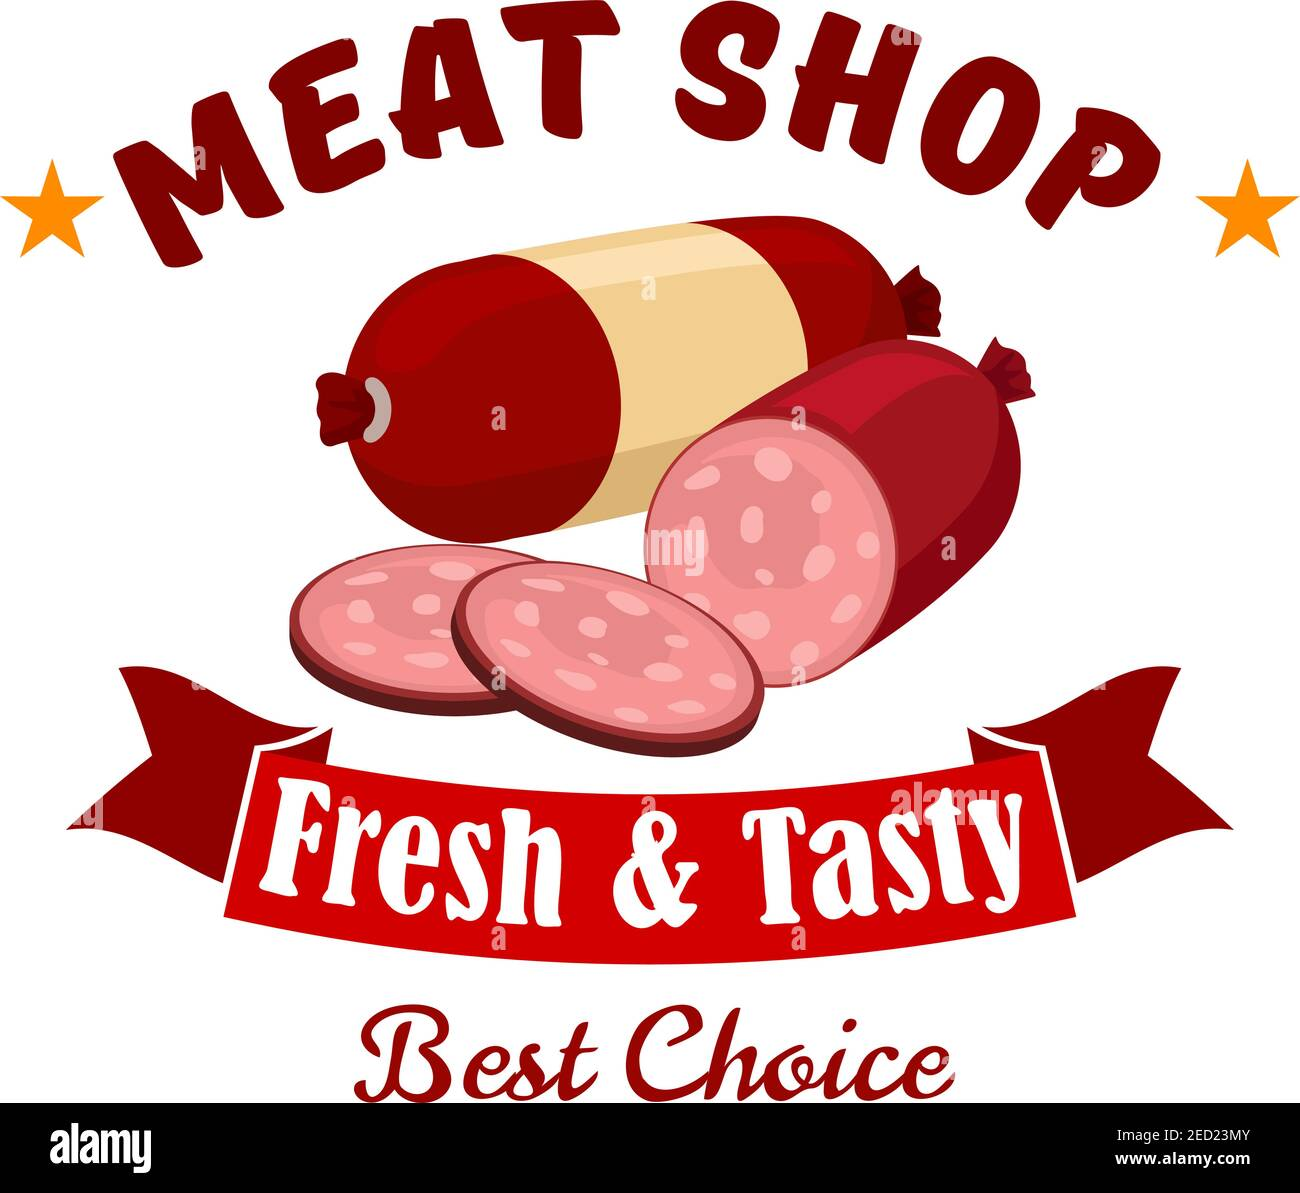 Meat shop business emblem. Vector label of butcher shop with elements of fresh meat products wurst, salami, smoked sliced sausage, red ribbon. Design Stock Vector